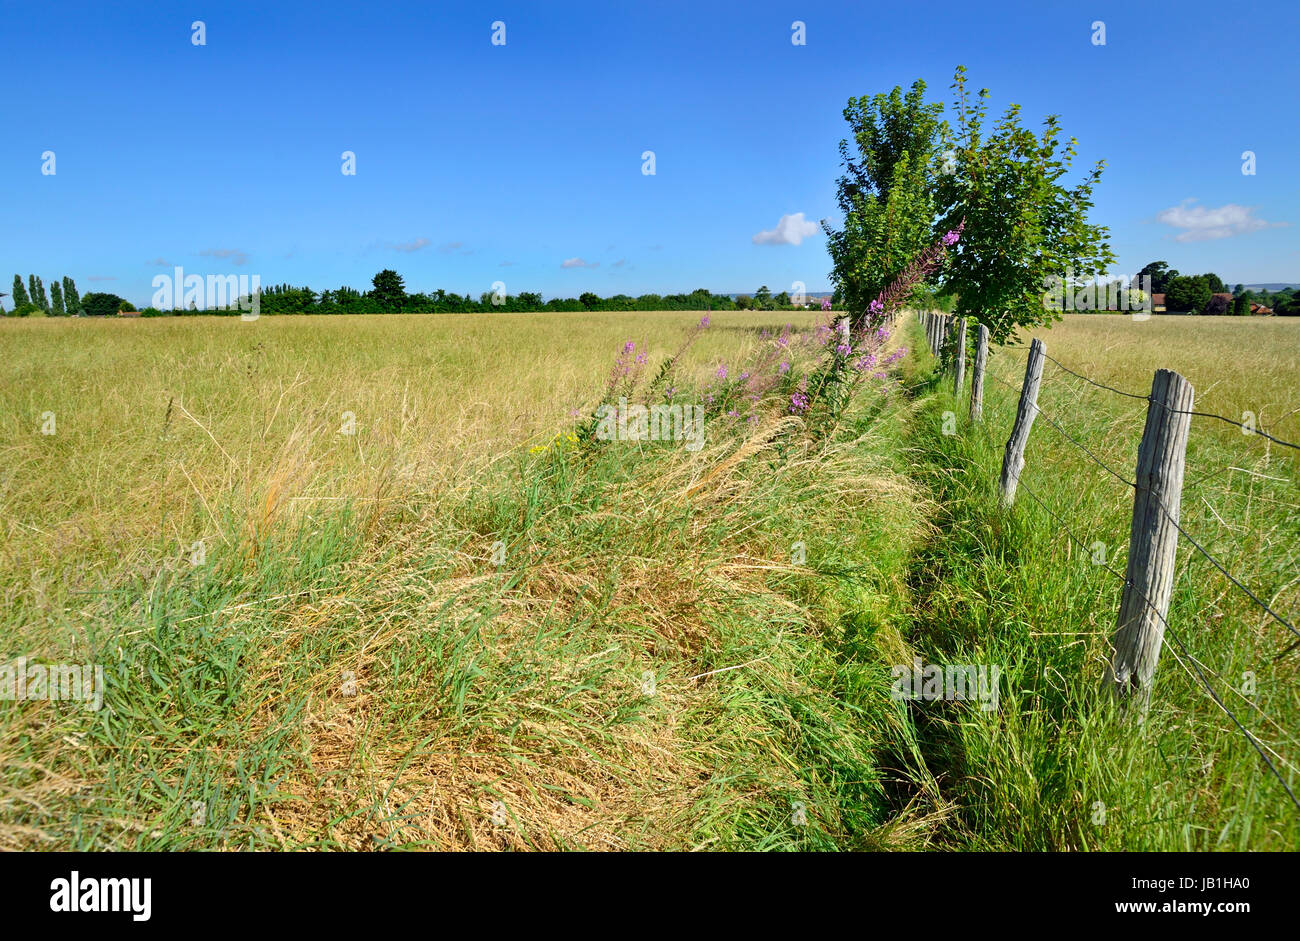 Boughton Monchelsea village, Kent, England. Fenced footpath through a field - Stock Image